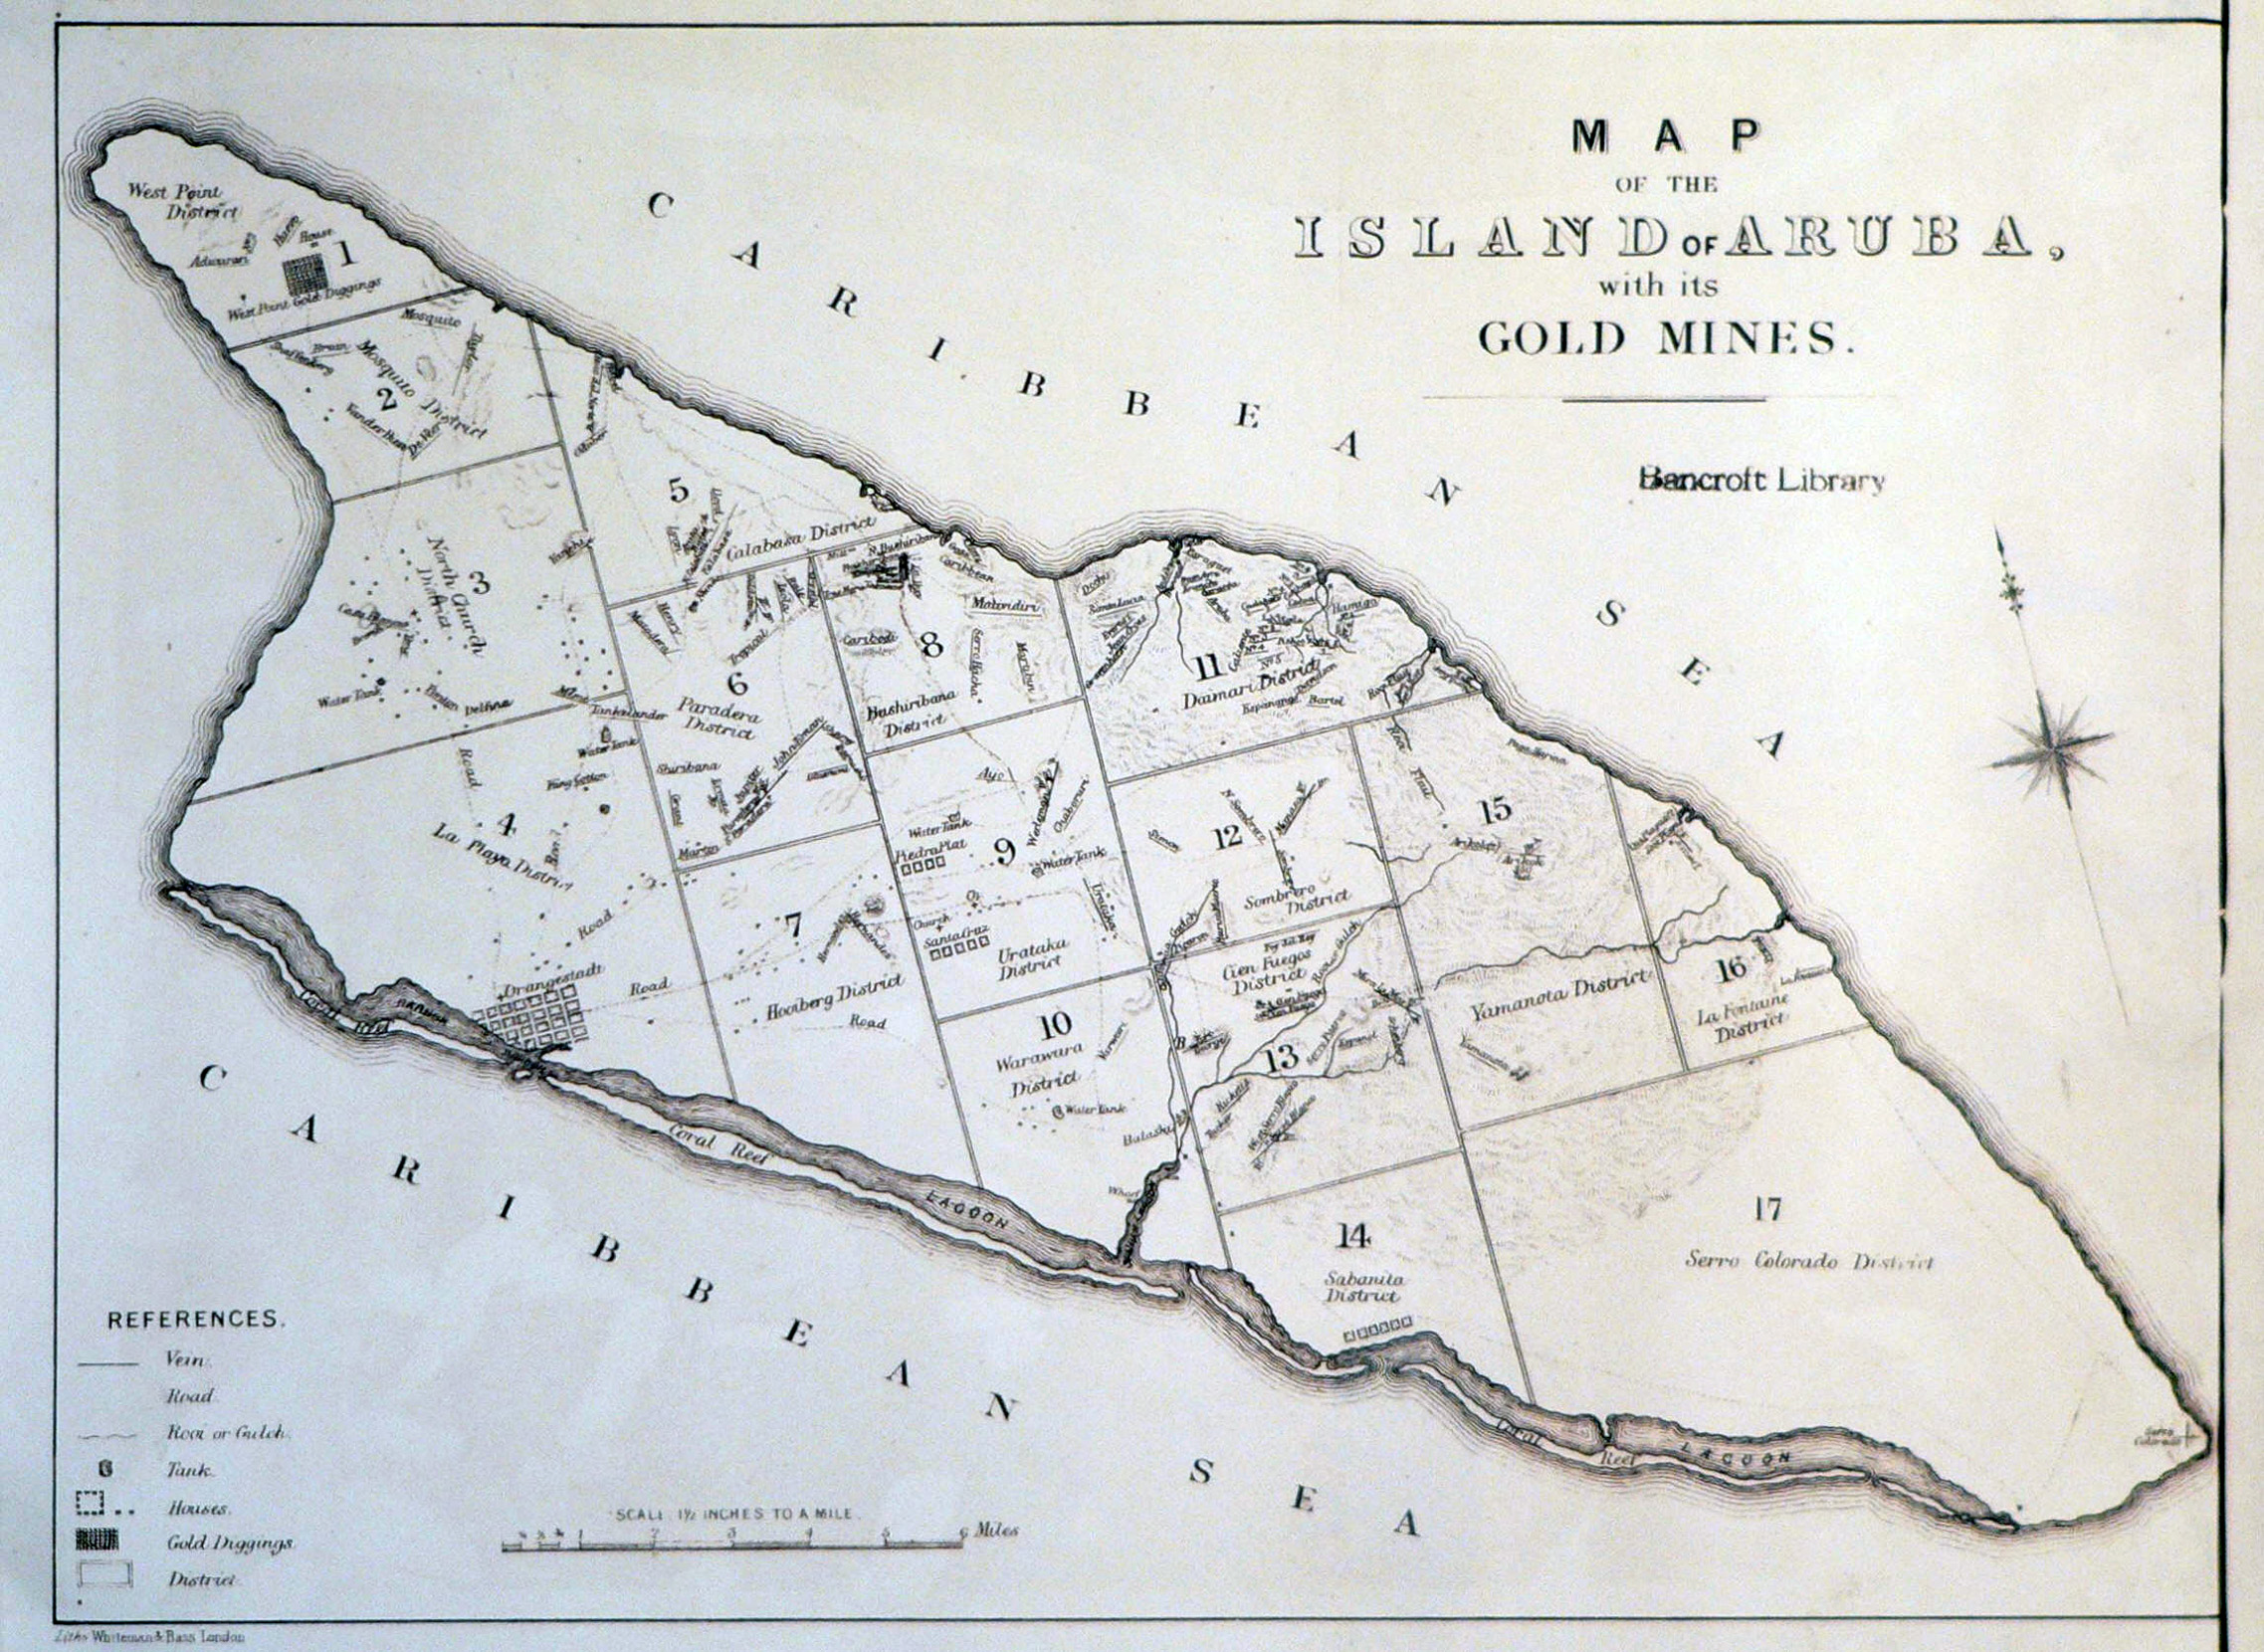 Large old map of the island of Aruba with its gold mines 1885